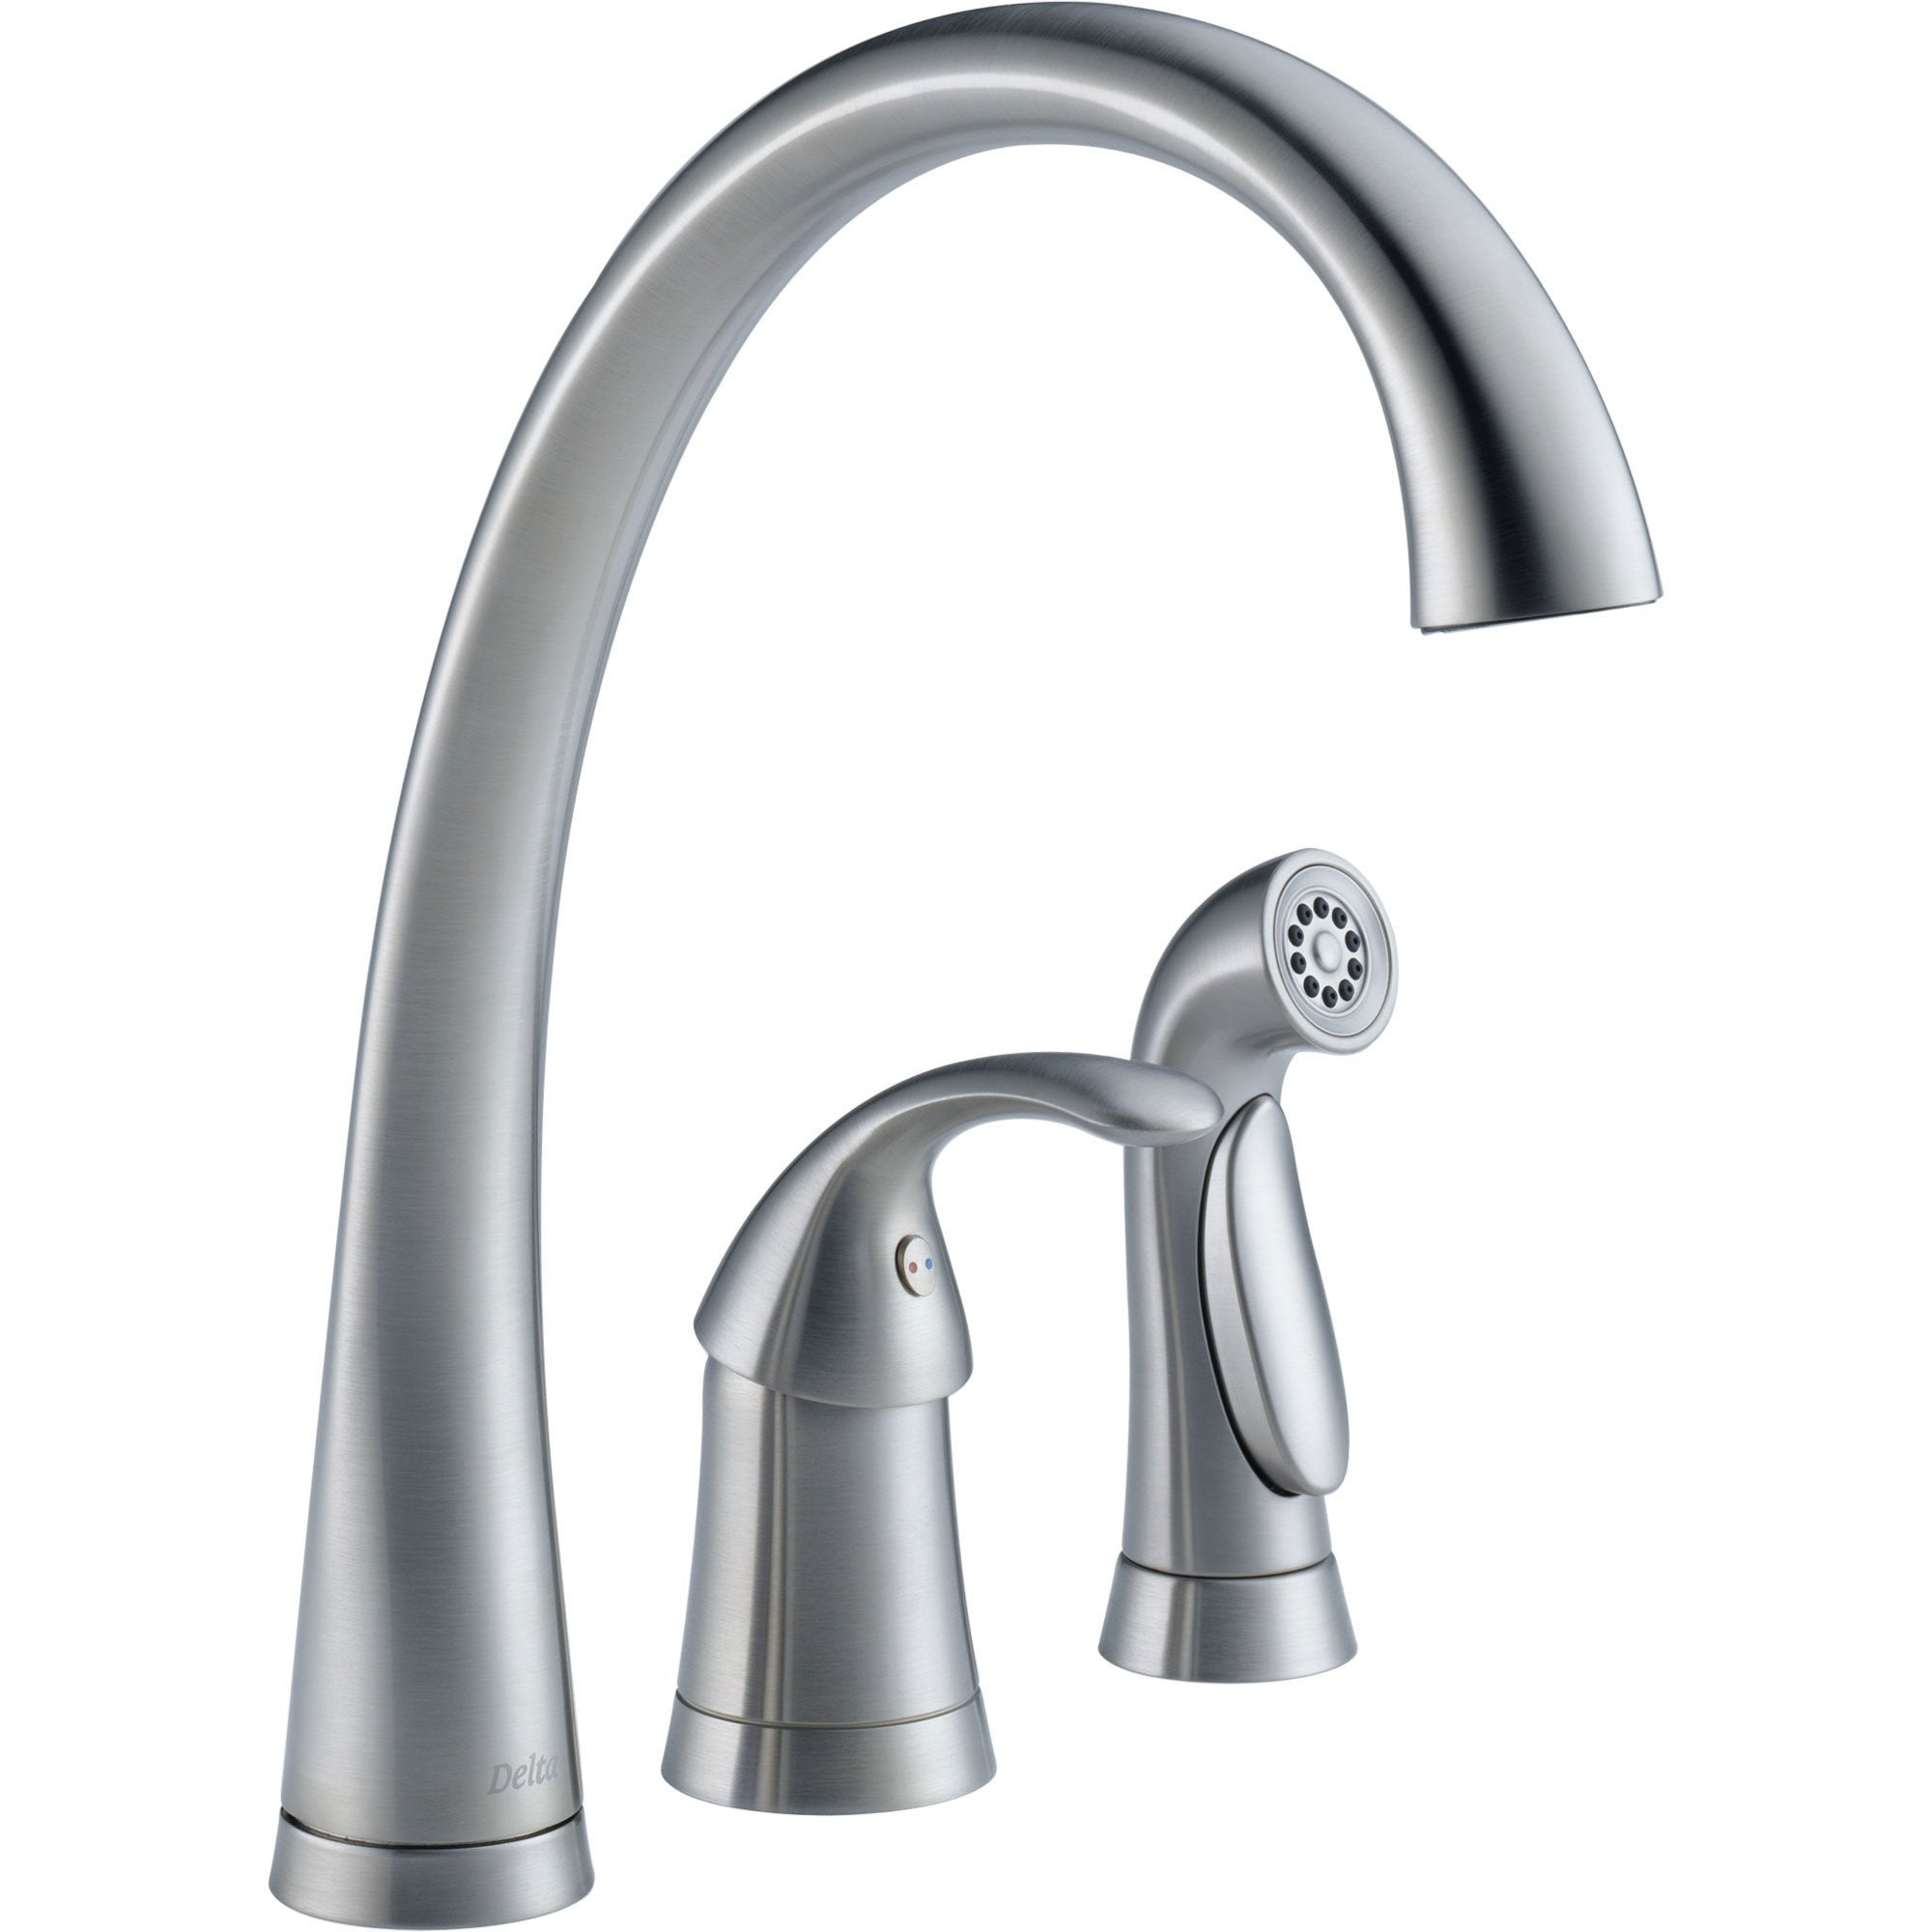 Delta Pilar Single Handle Kitchen Faucet with Spray in Arctic Stainless 556051